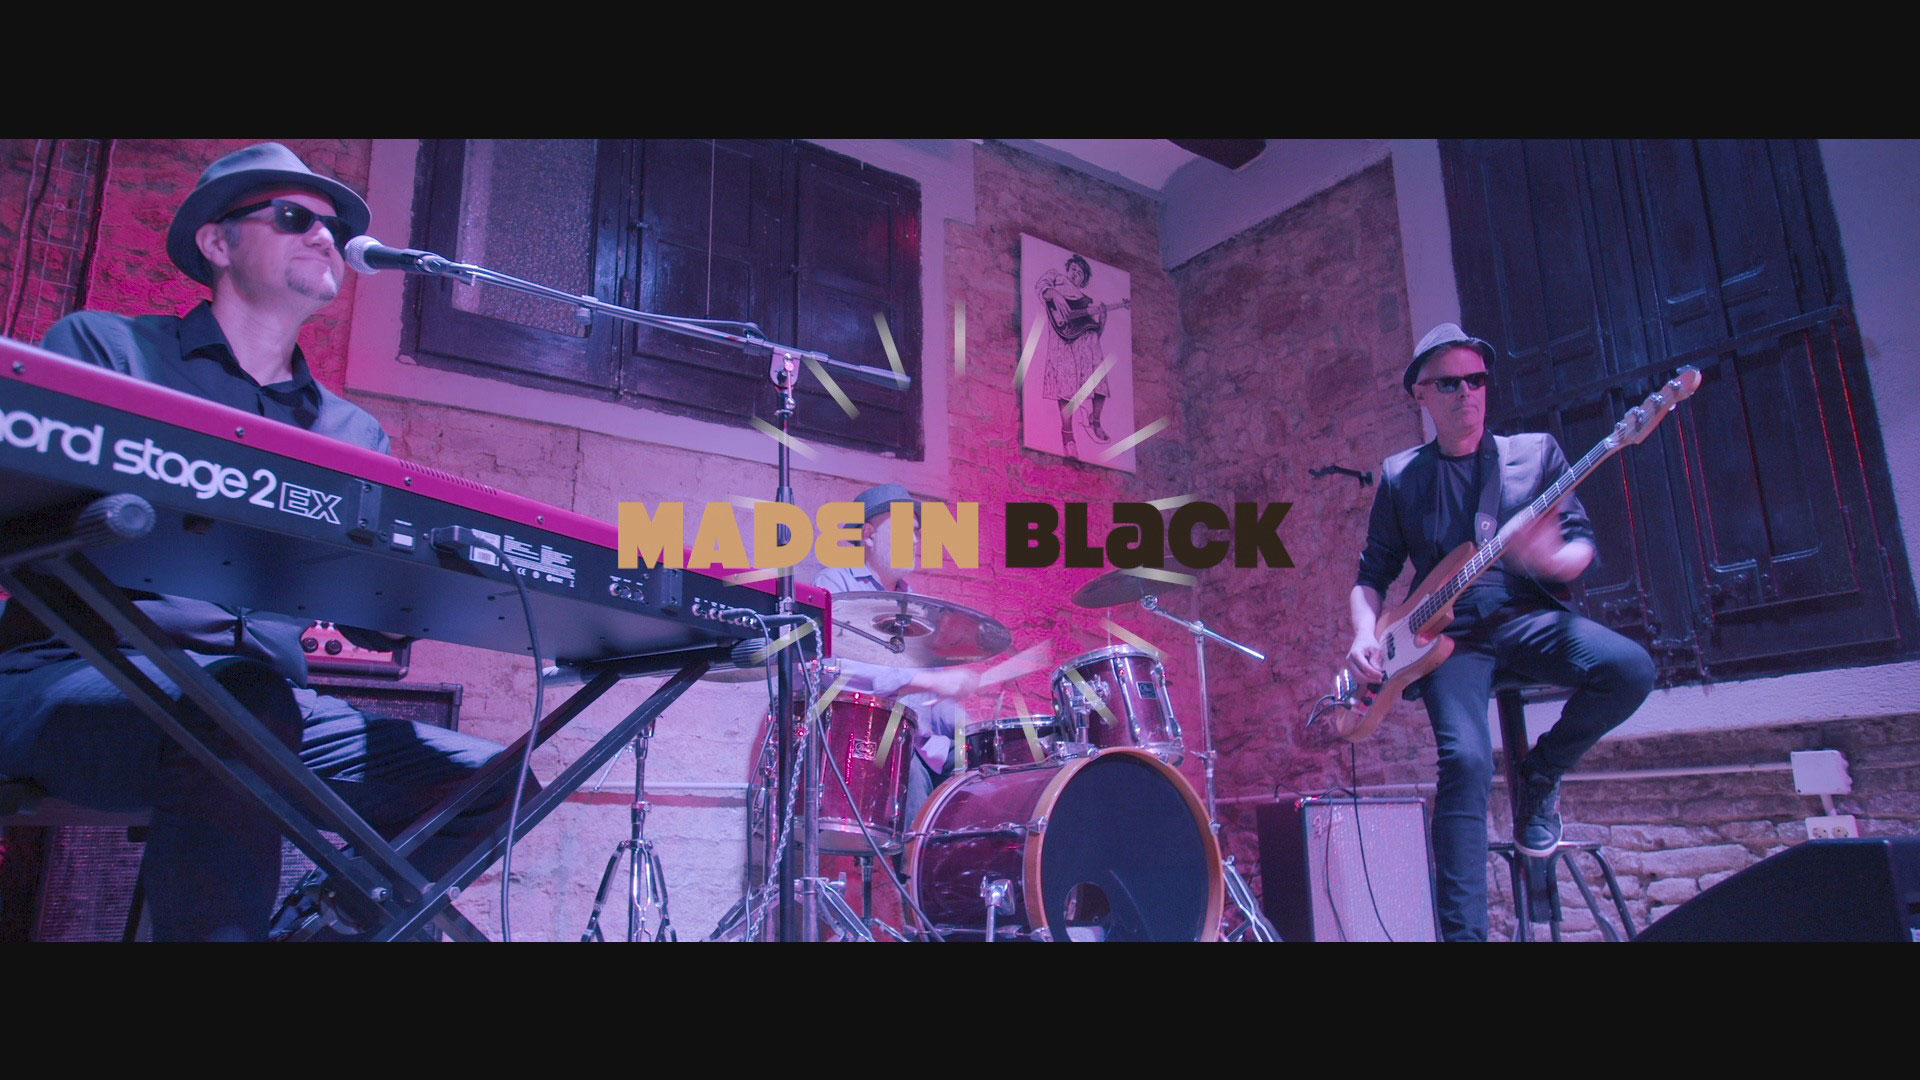 MADE IN BLACK